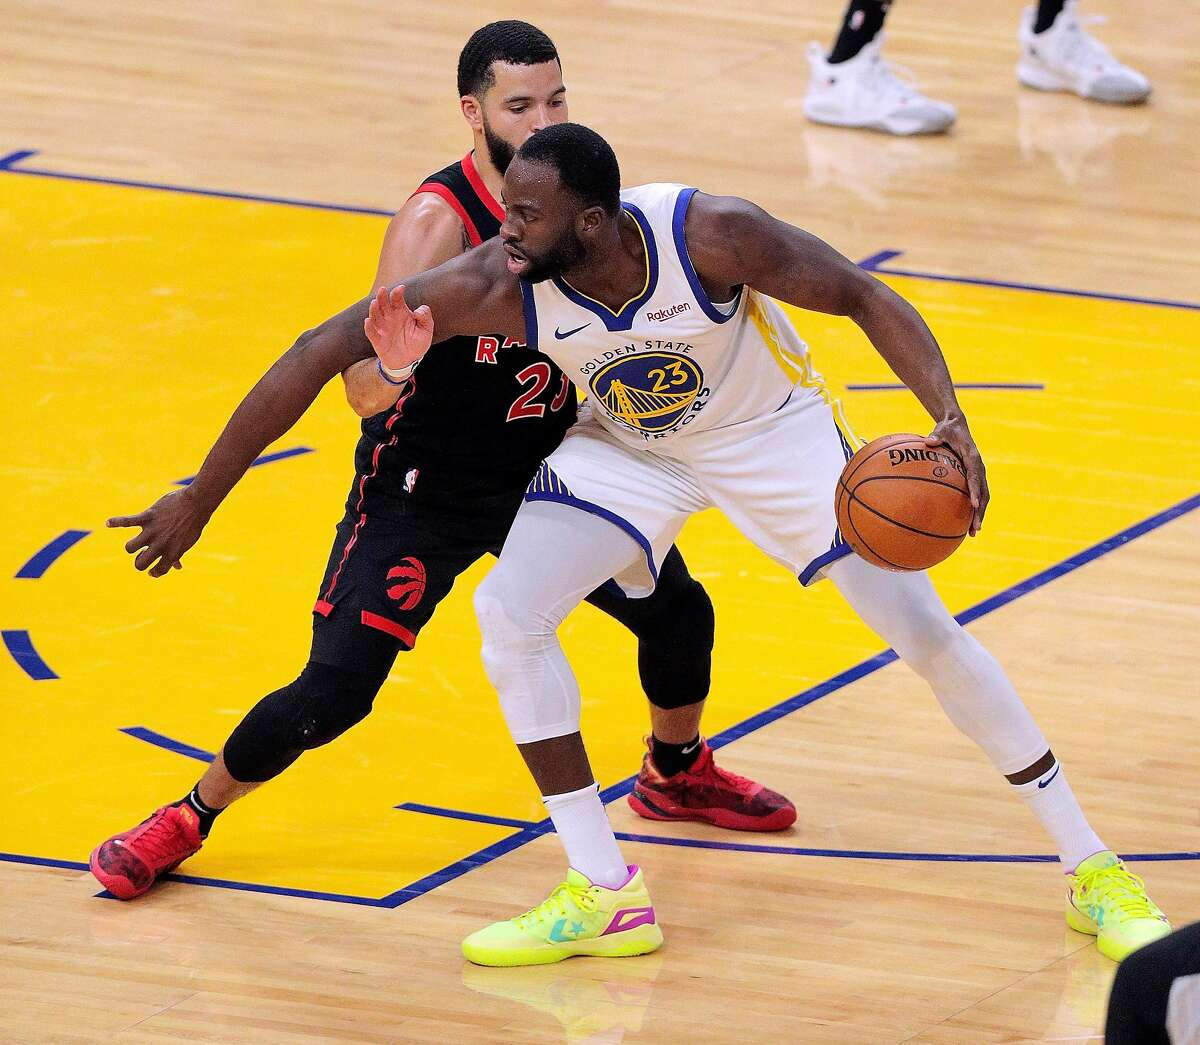 Draymond Green (23) defended by Fred Van Vleet (23) in the first half as the Golden State Warriors played the Toronto Raptors at Chase Center in San Francisco, Calif., on Sunday, January 10, 2021.